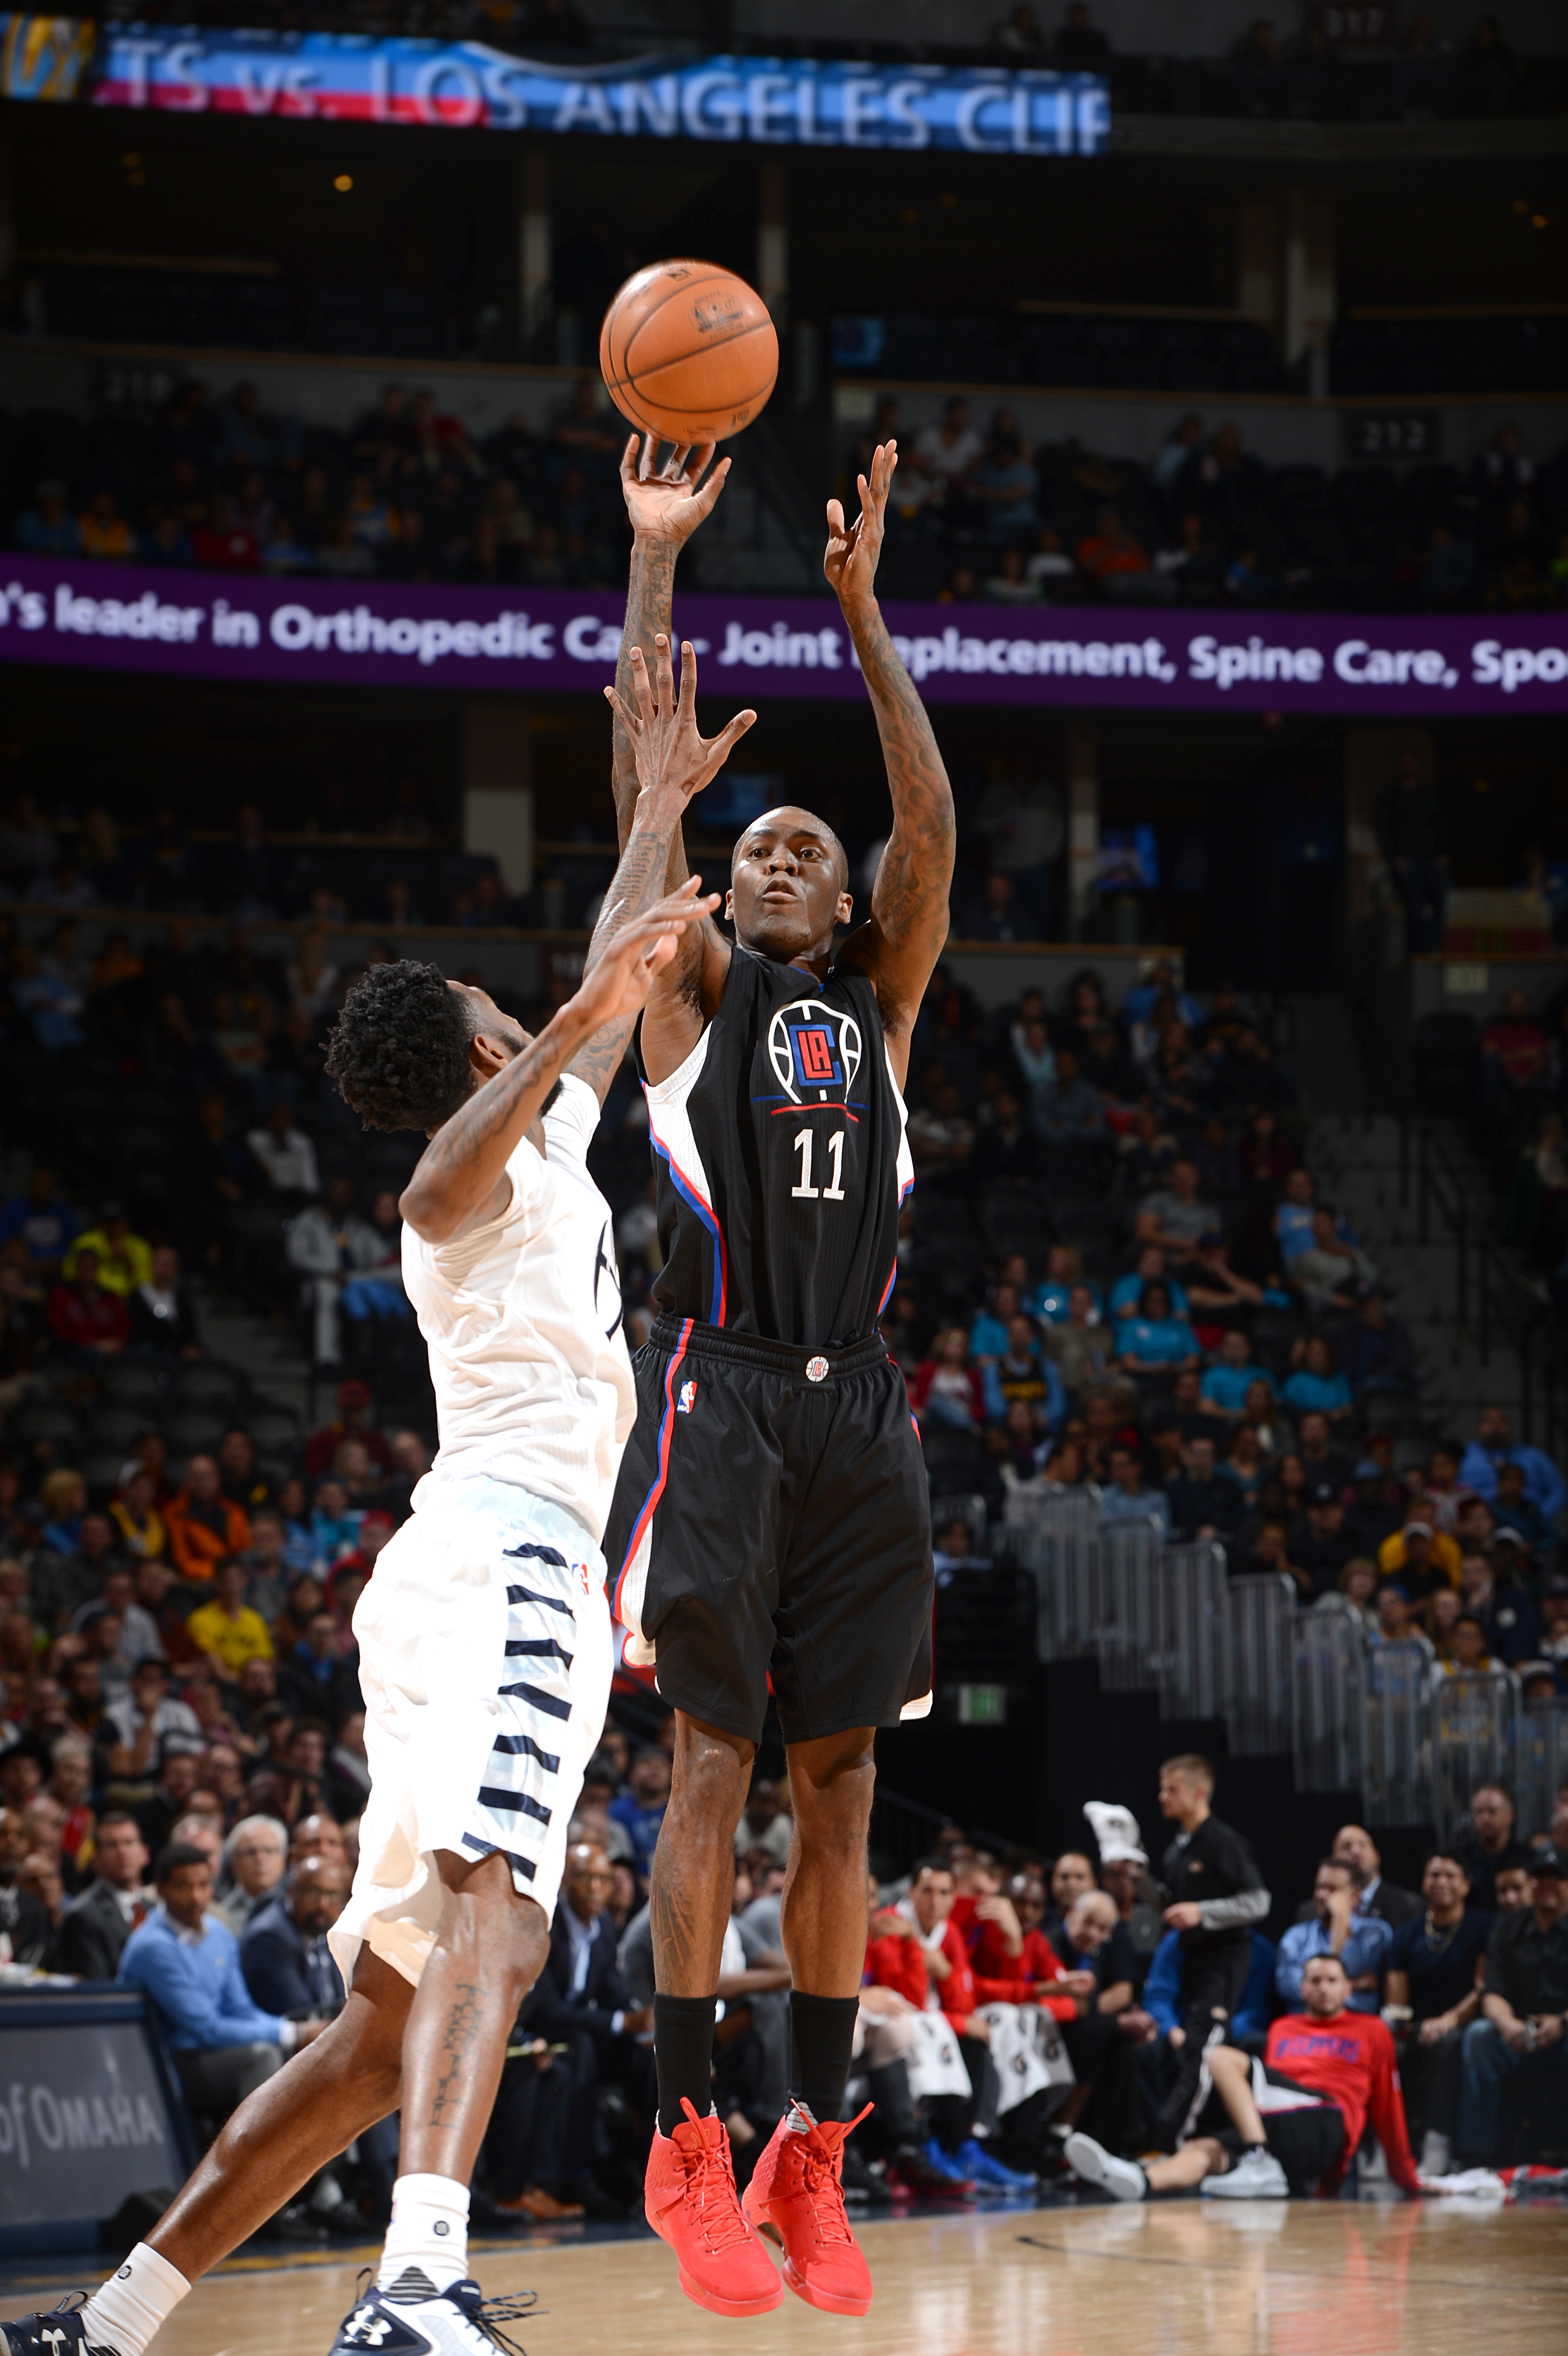 DENVER, CO - NOVEMBER 24: Jamal Crawford #11 of the Los Angeles Clippers shoots the ball during the game against the Denver Nuggets on November 24 2015 at the Pepsi Center in Denver, Colorado. (Photo by Garrett Ellwood/NBAE via Getty Images)